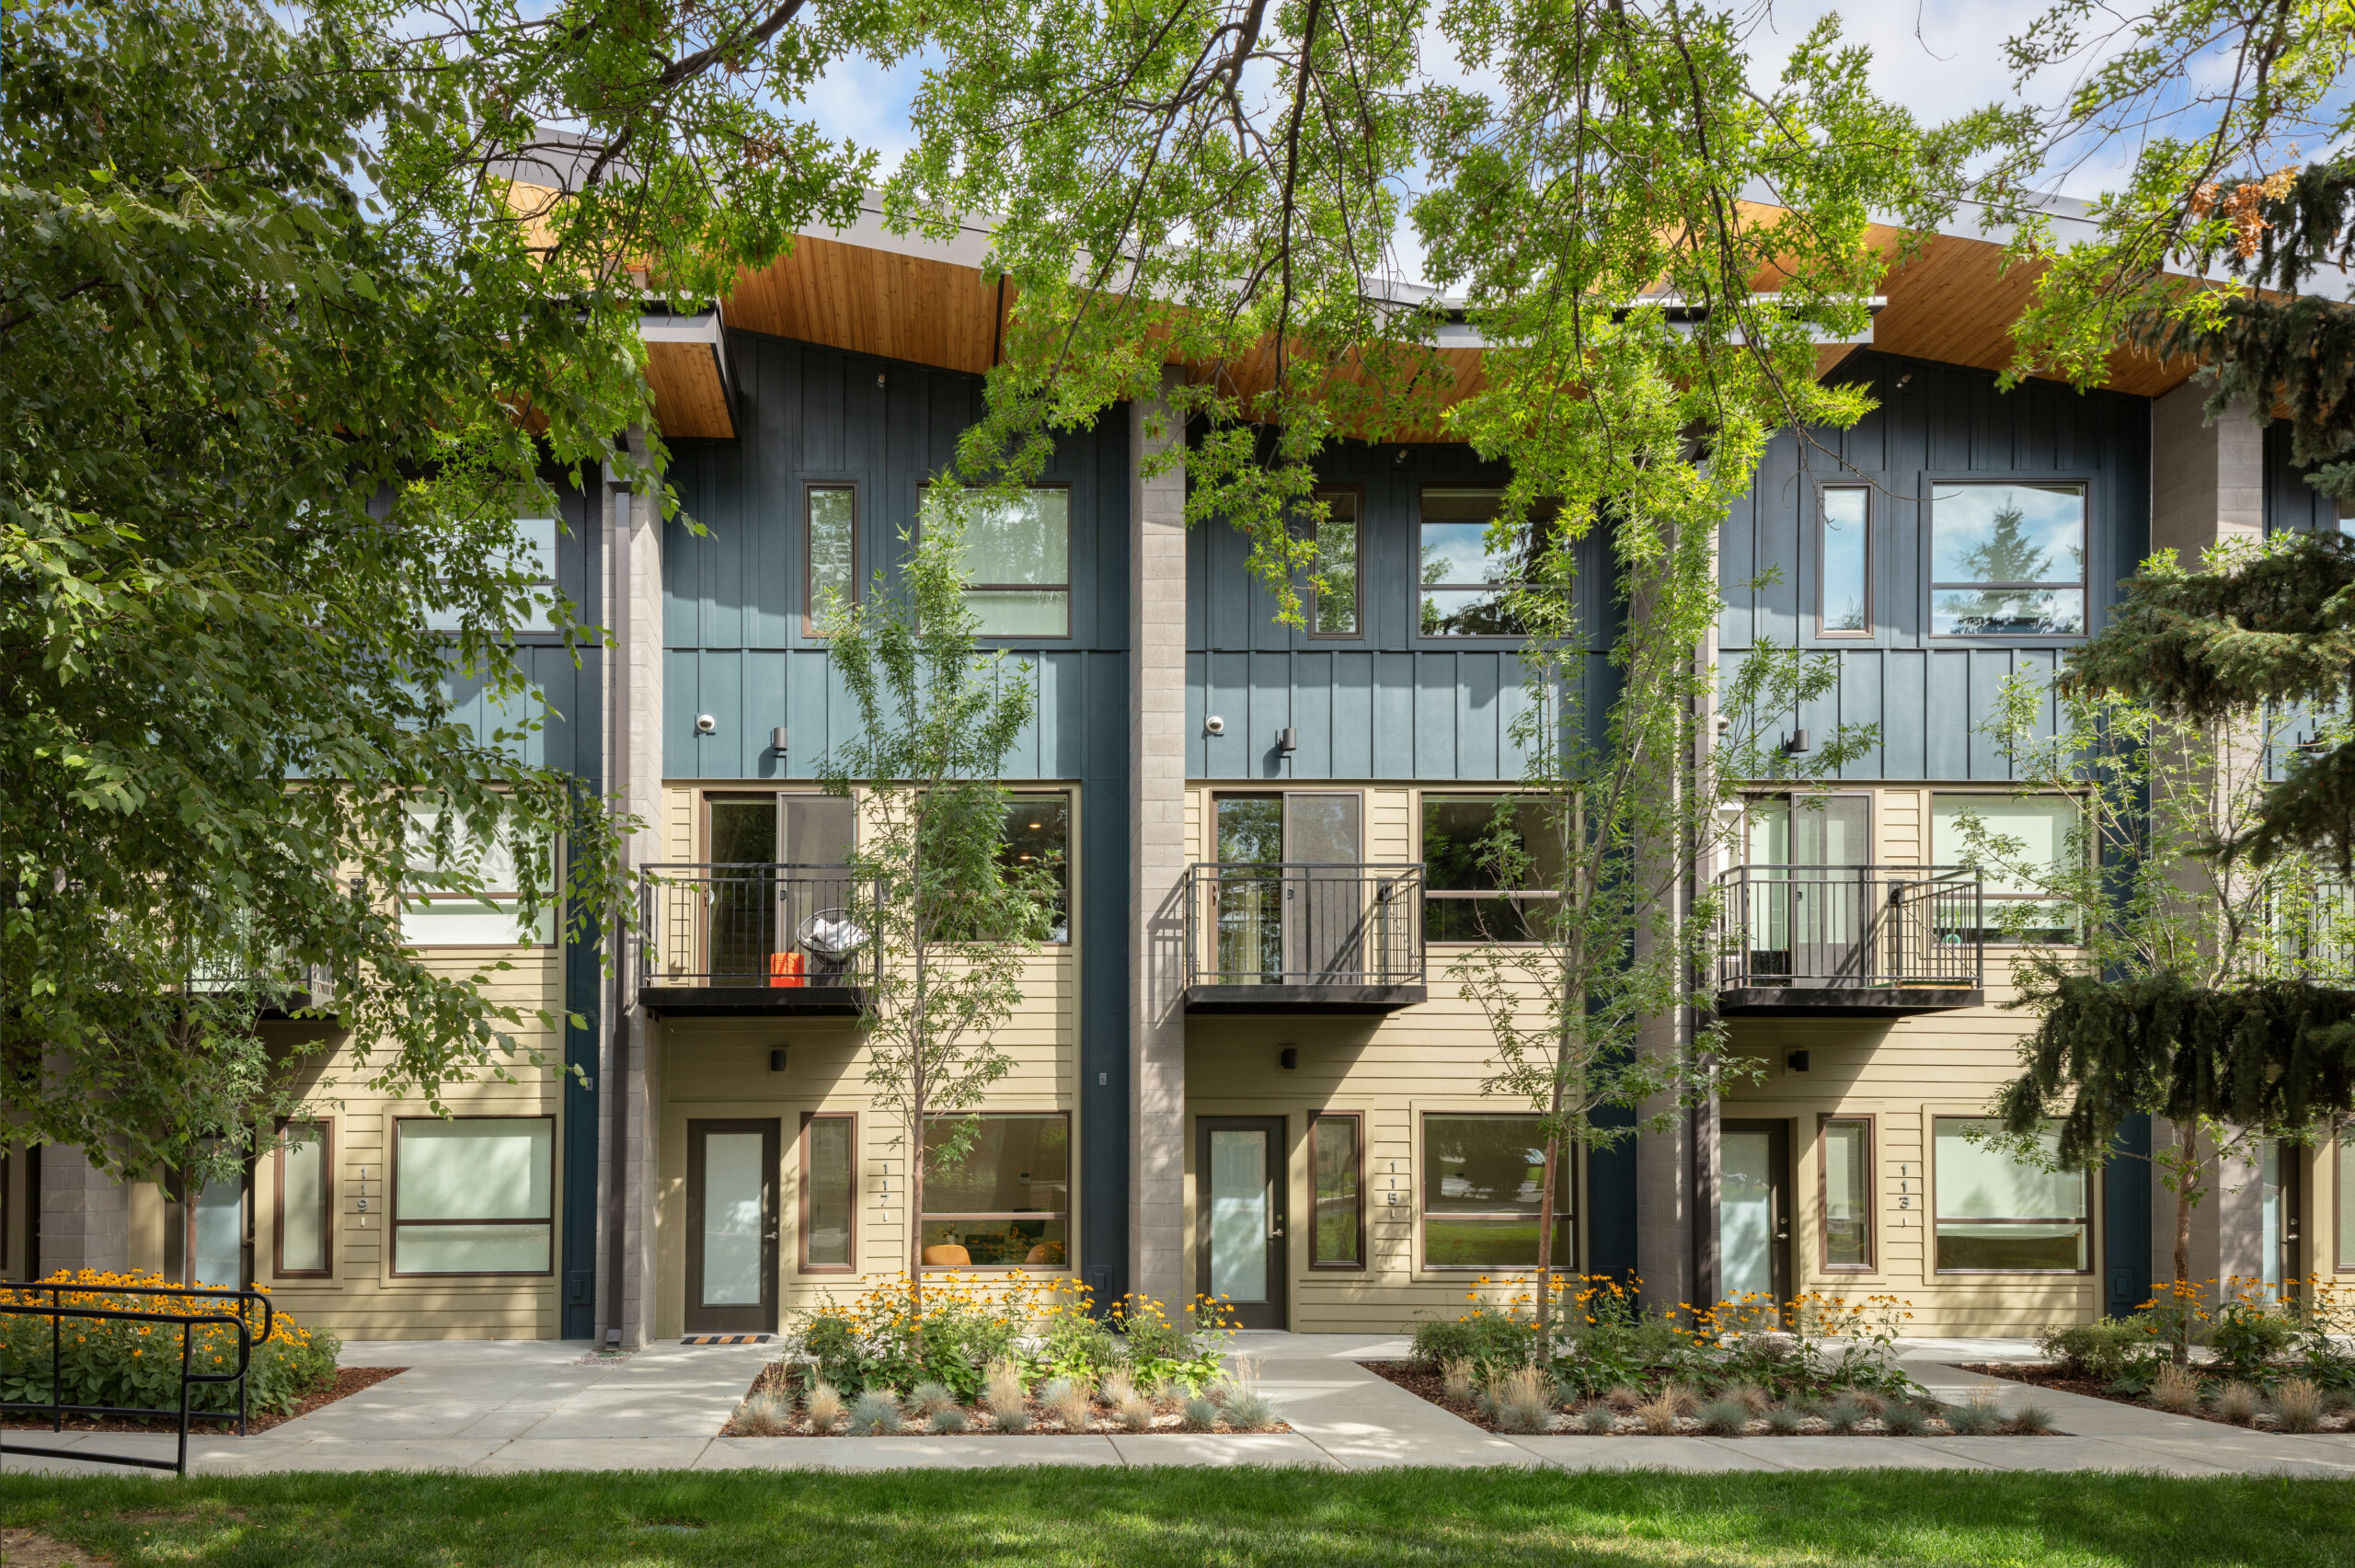 Housing for the 'missing middle': Boise development recognized nationally